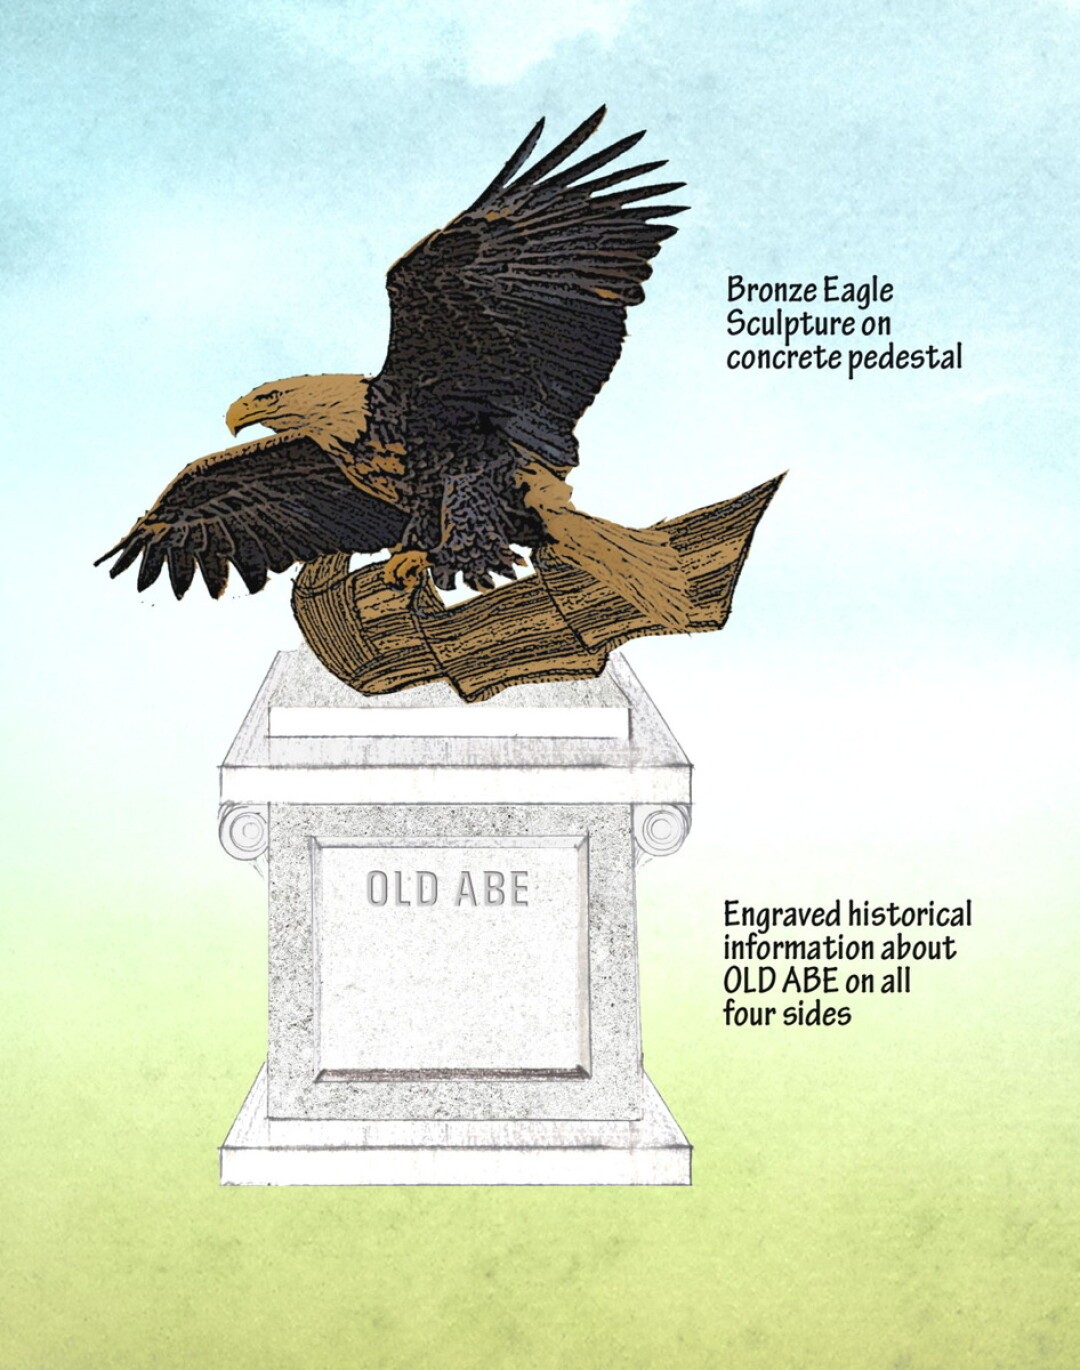 Plans to create a veterans memorial trail in downtown Eau Claire include a statue of Old Abe, the legendary (but real!) bald eagle who accompanied Wisconsin troops during the Civil War.